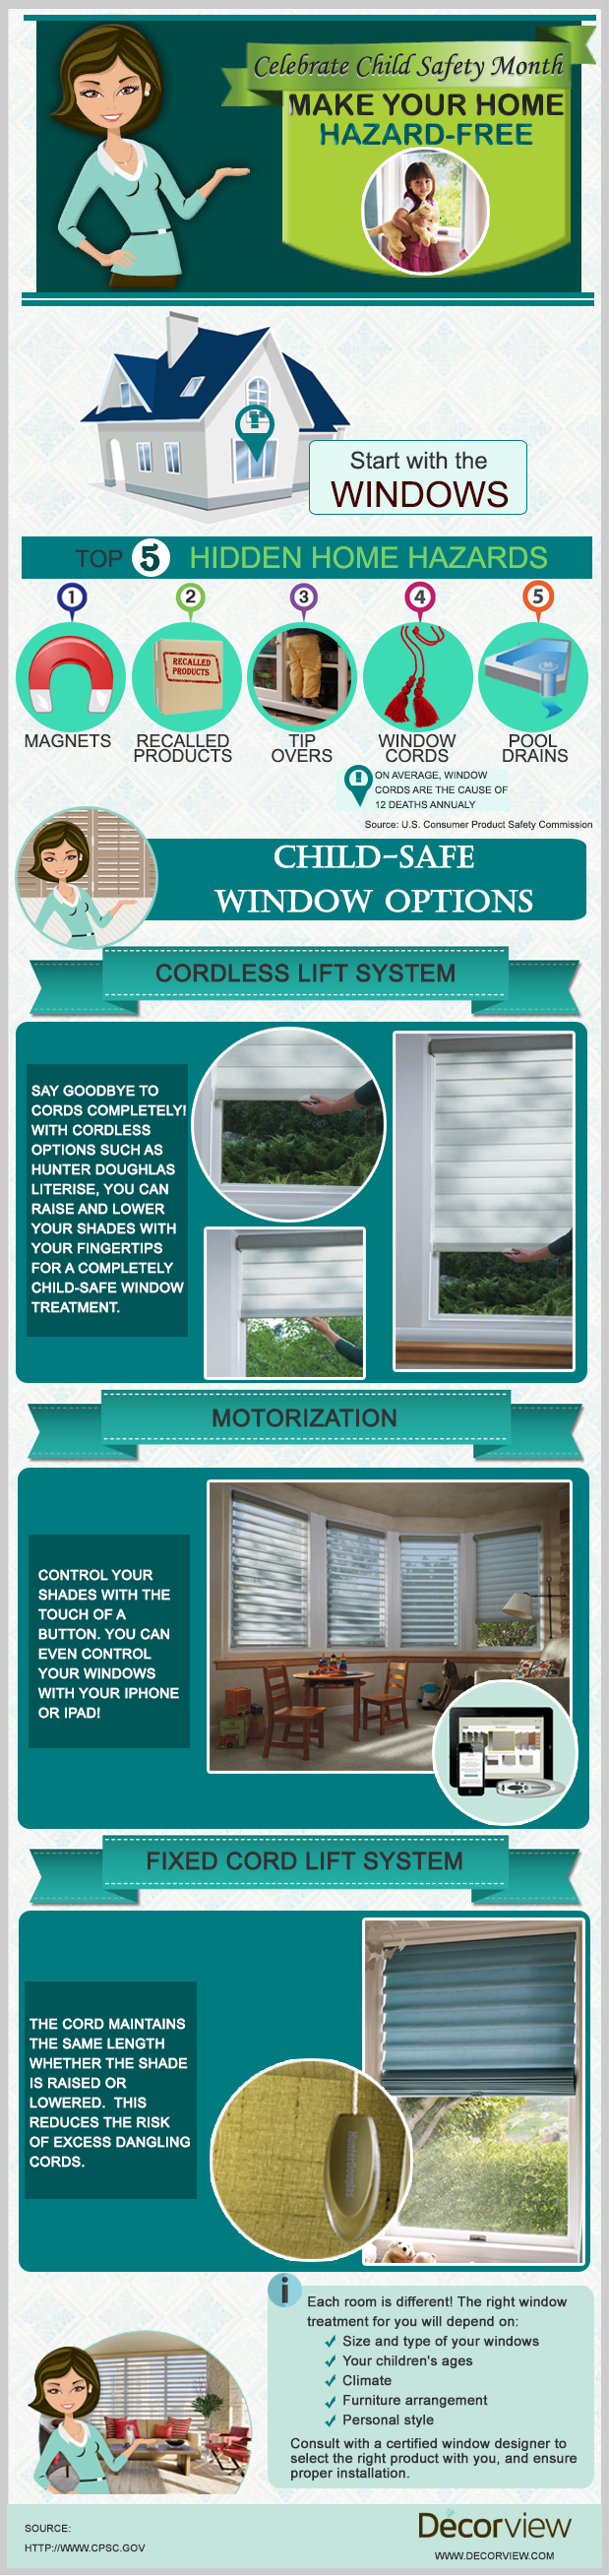 Child Safe Windows Infographic Child safe window